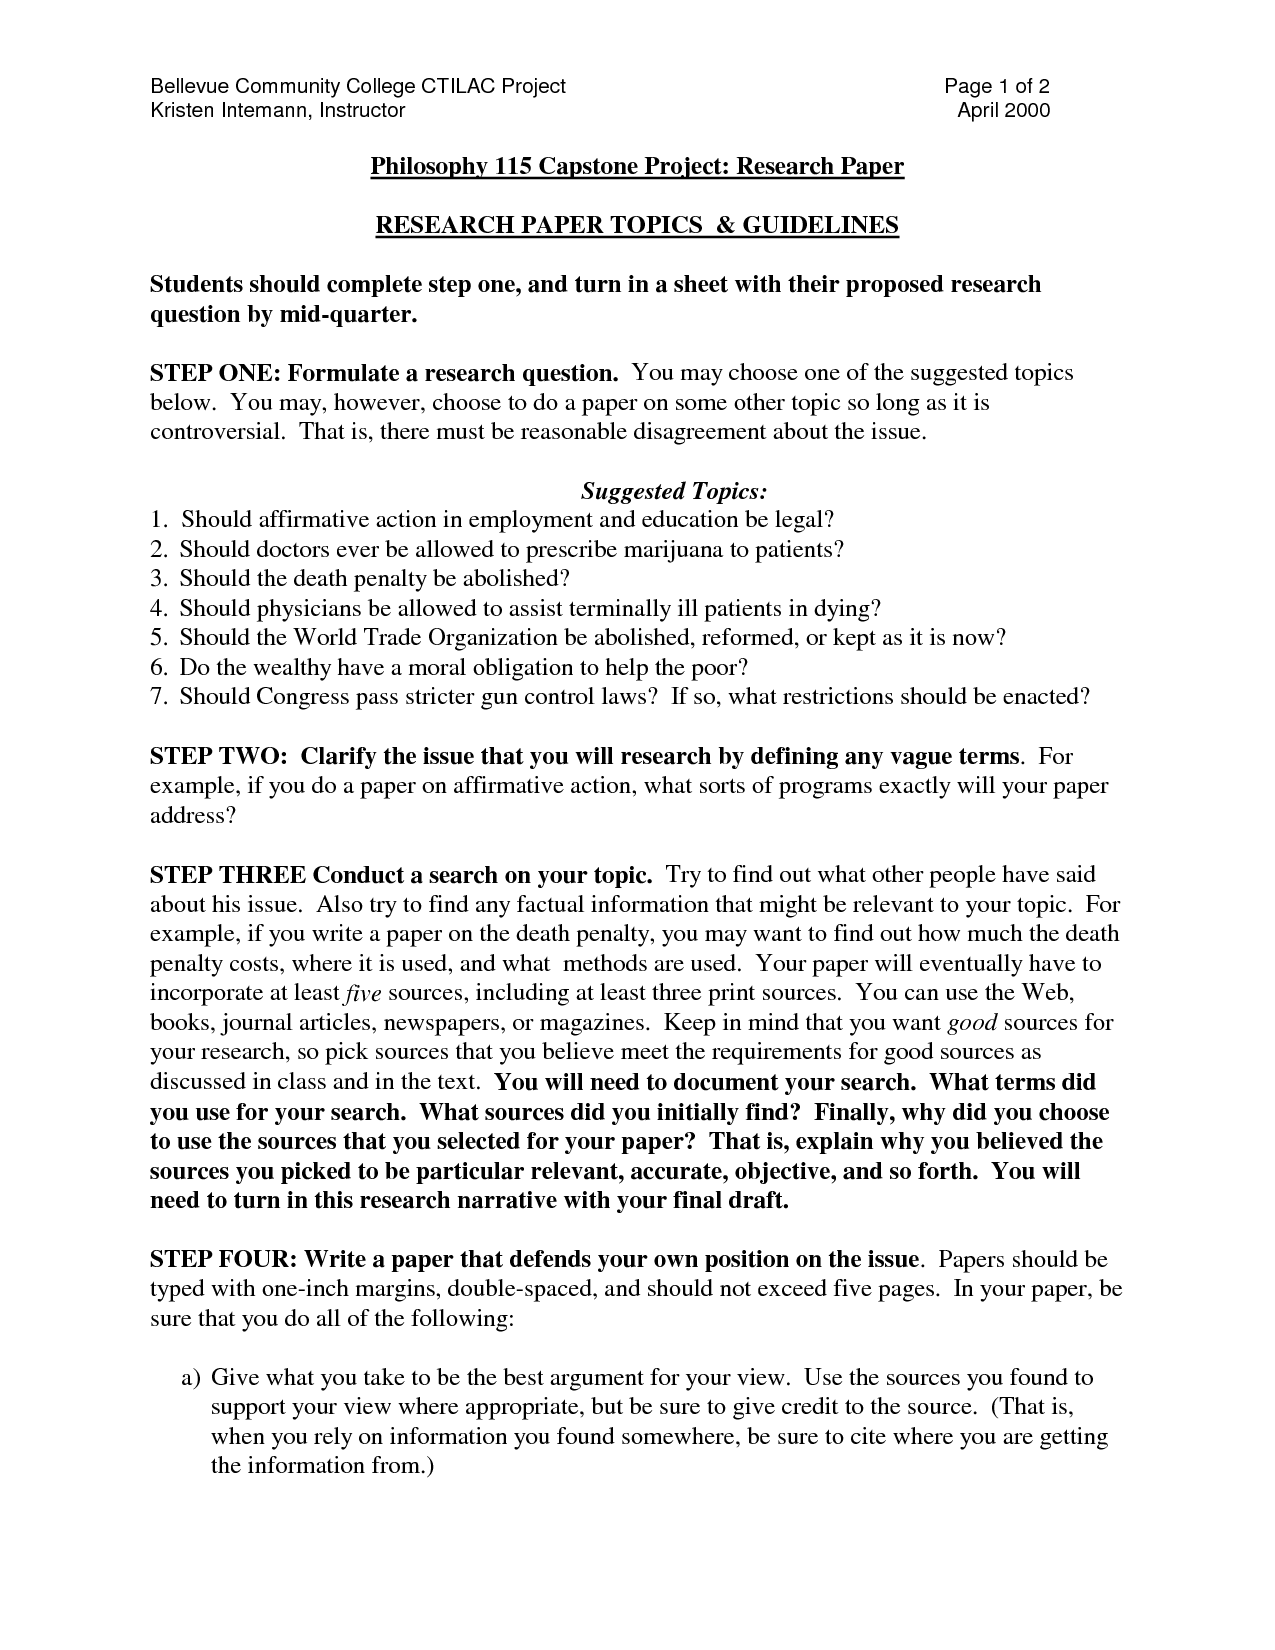 004 College Research Paper Example Essays Sample Essay Papers L Breathtaking Introduction Full